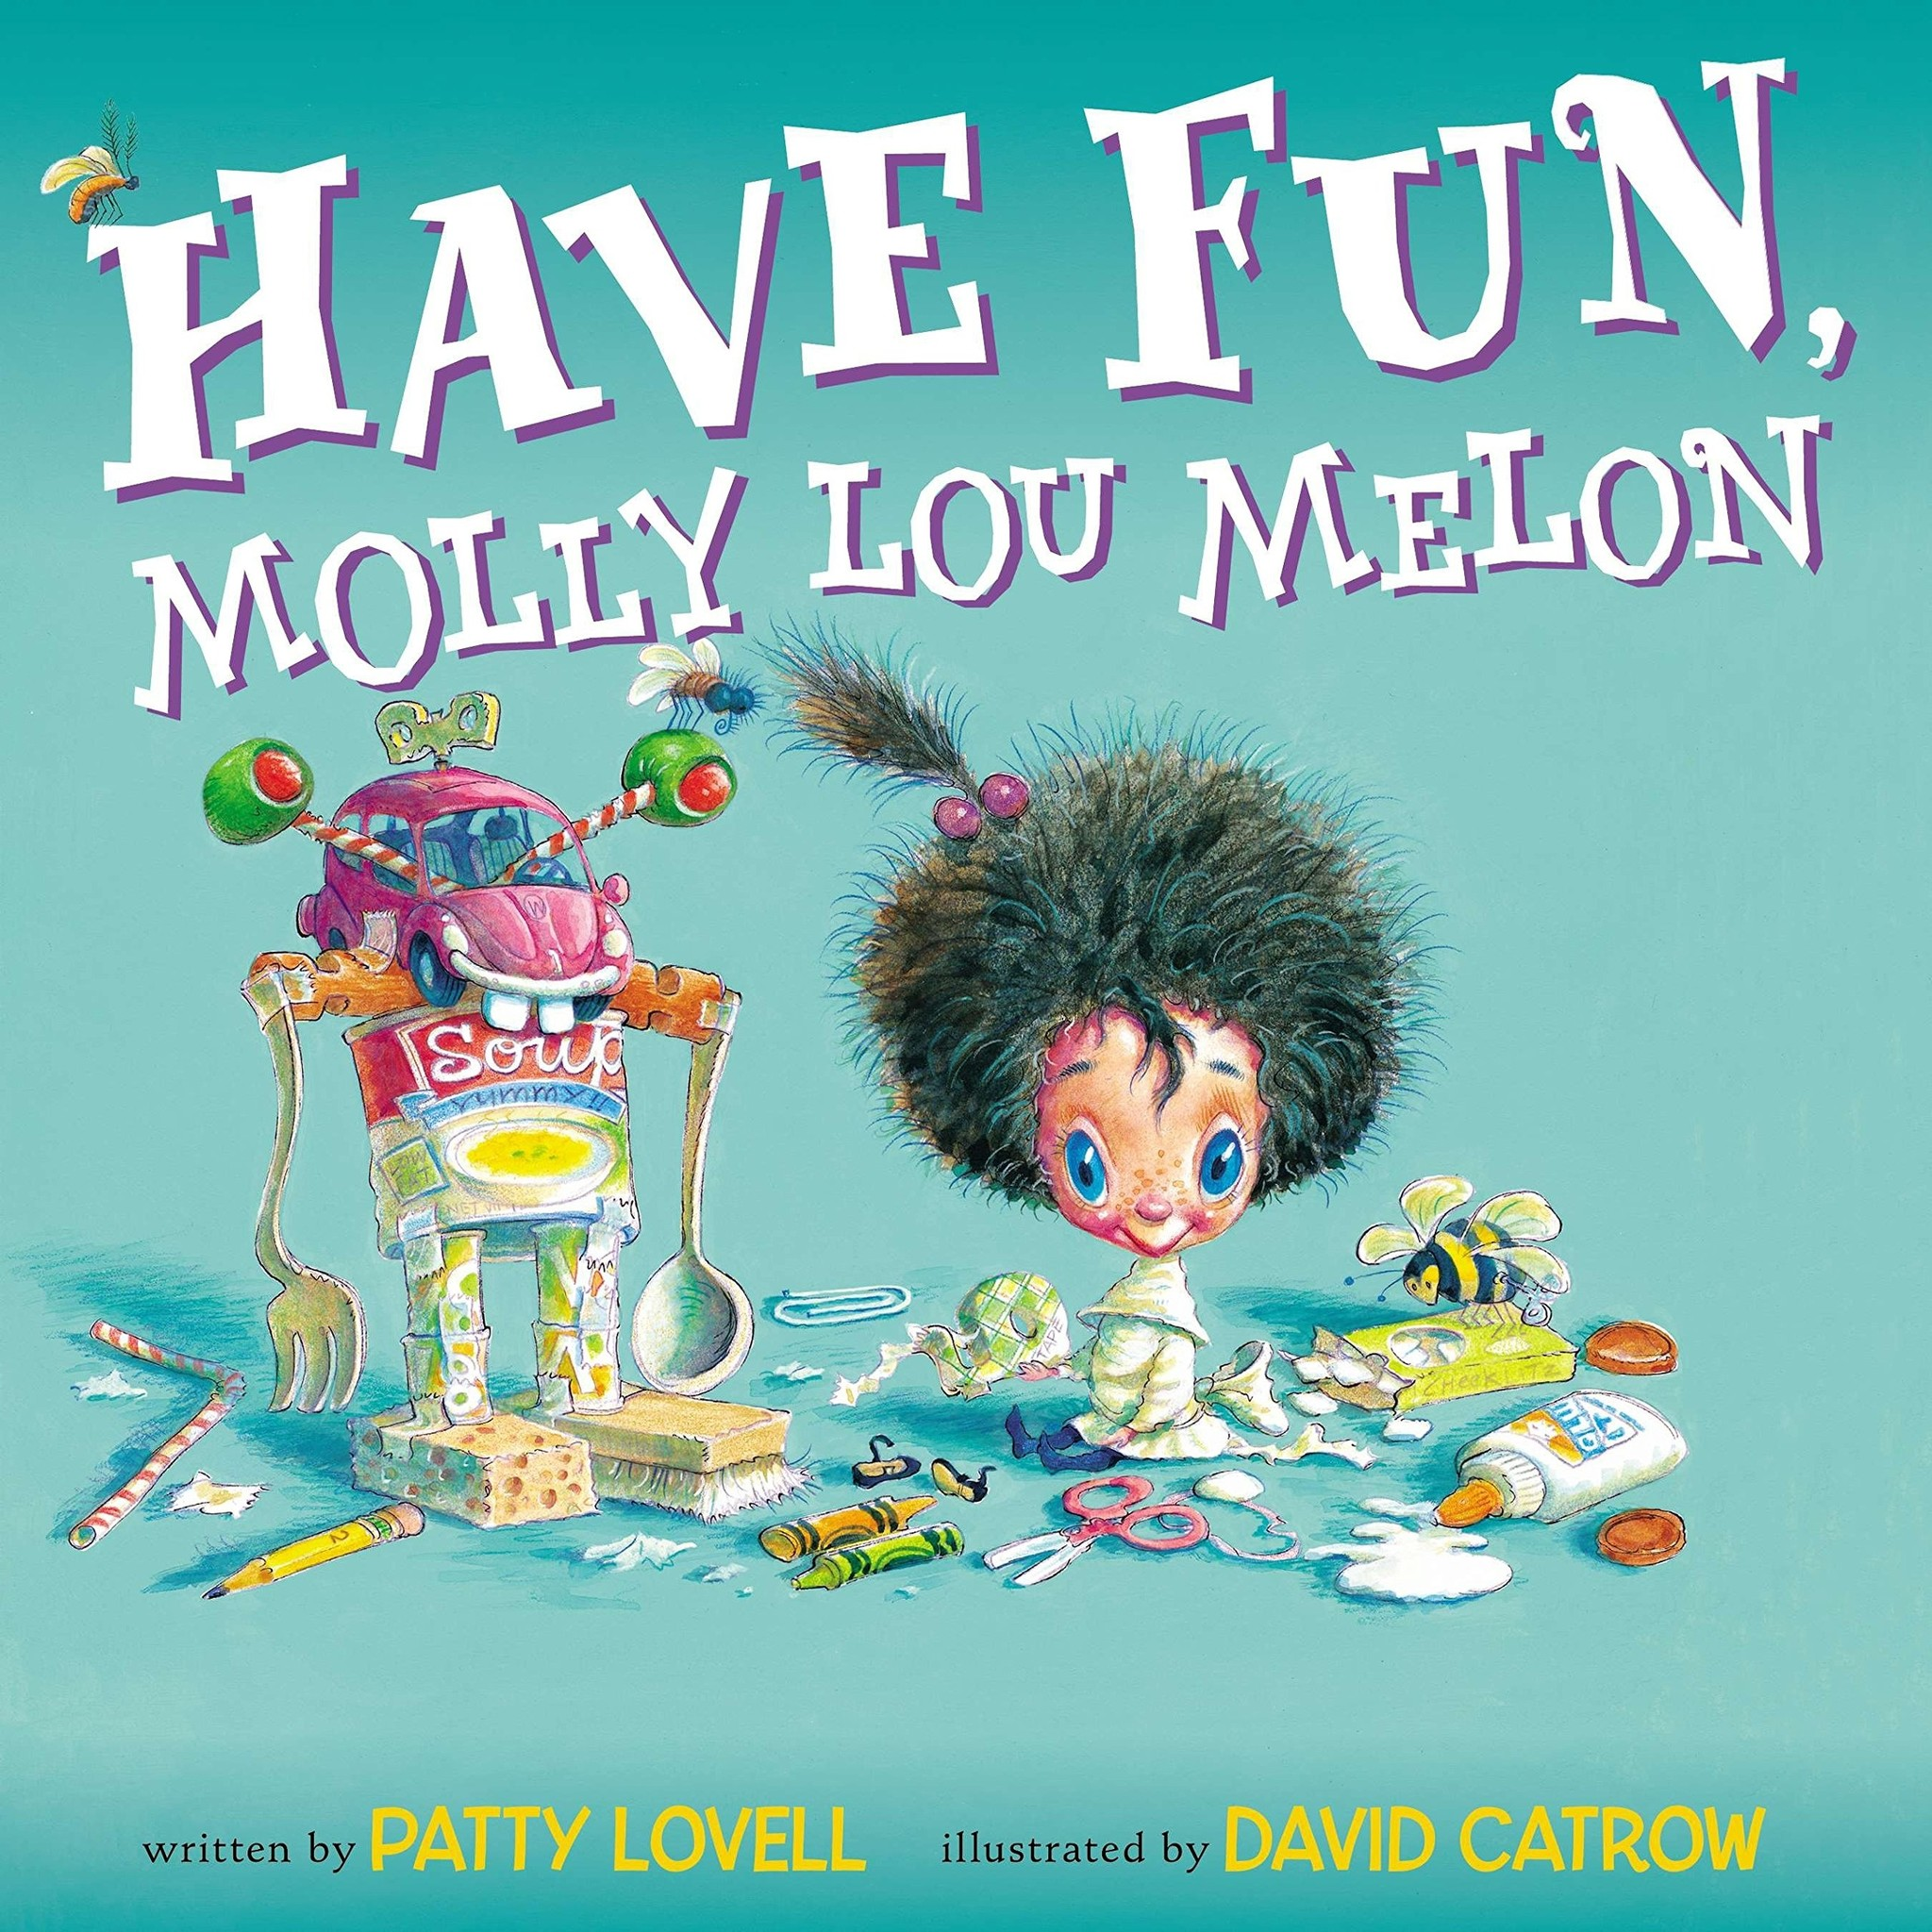 Have Fun Molly Lou Melon by Patty Lovell (ages 5-8)